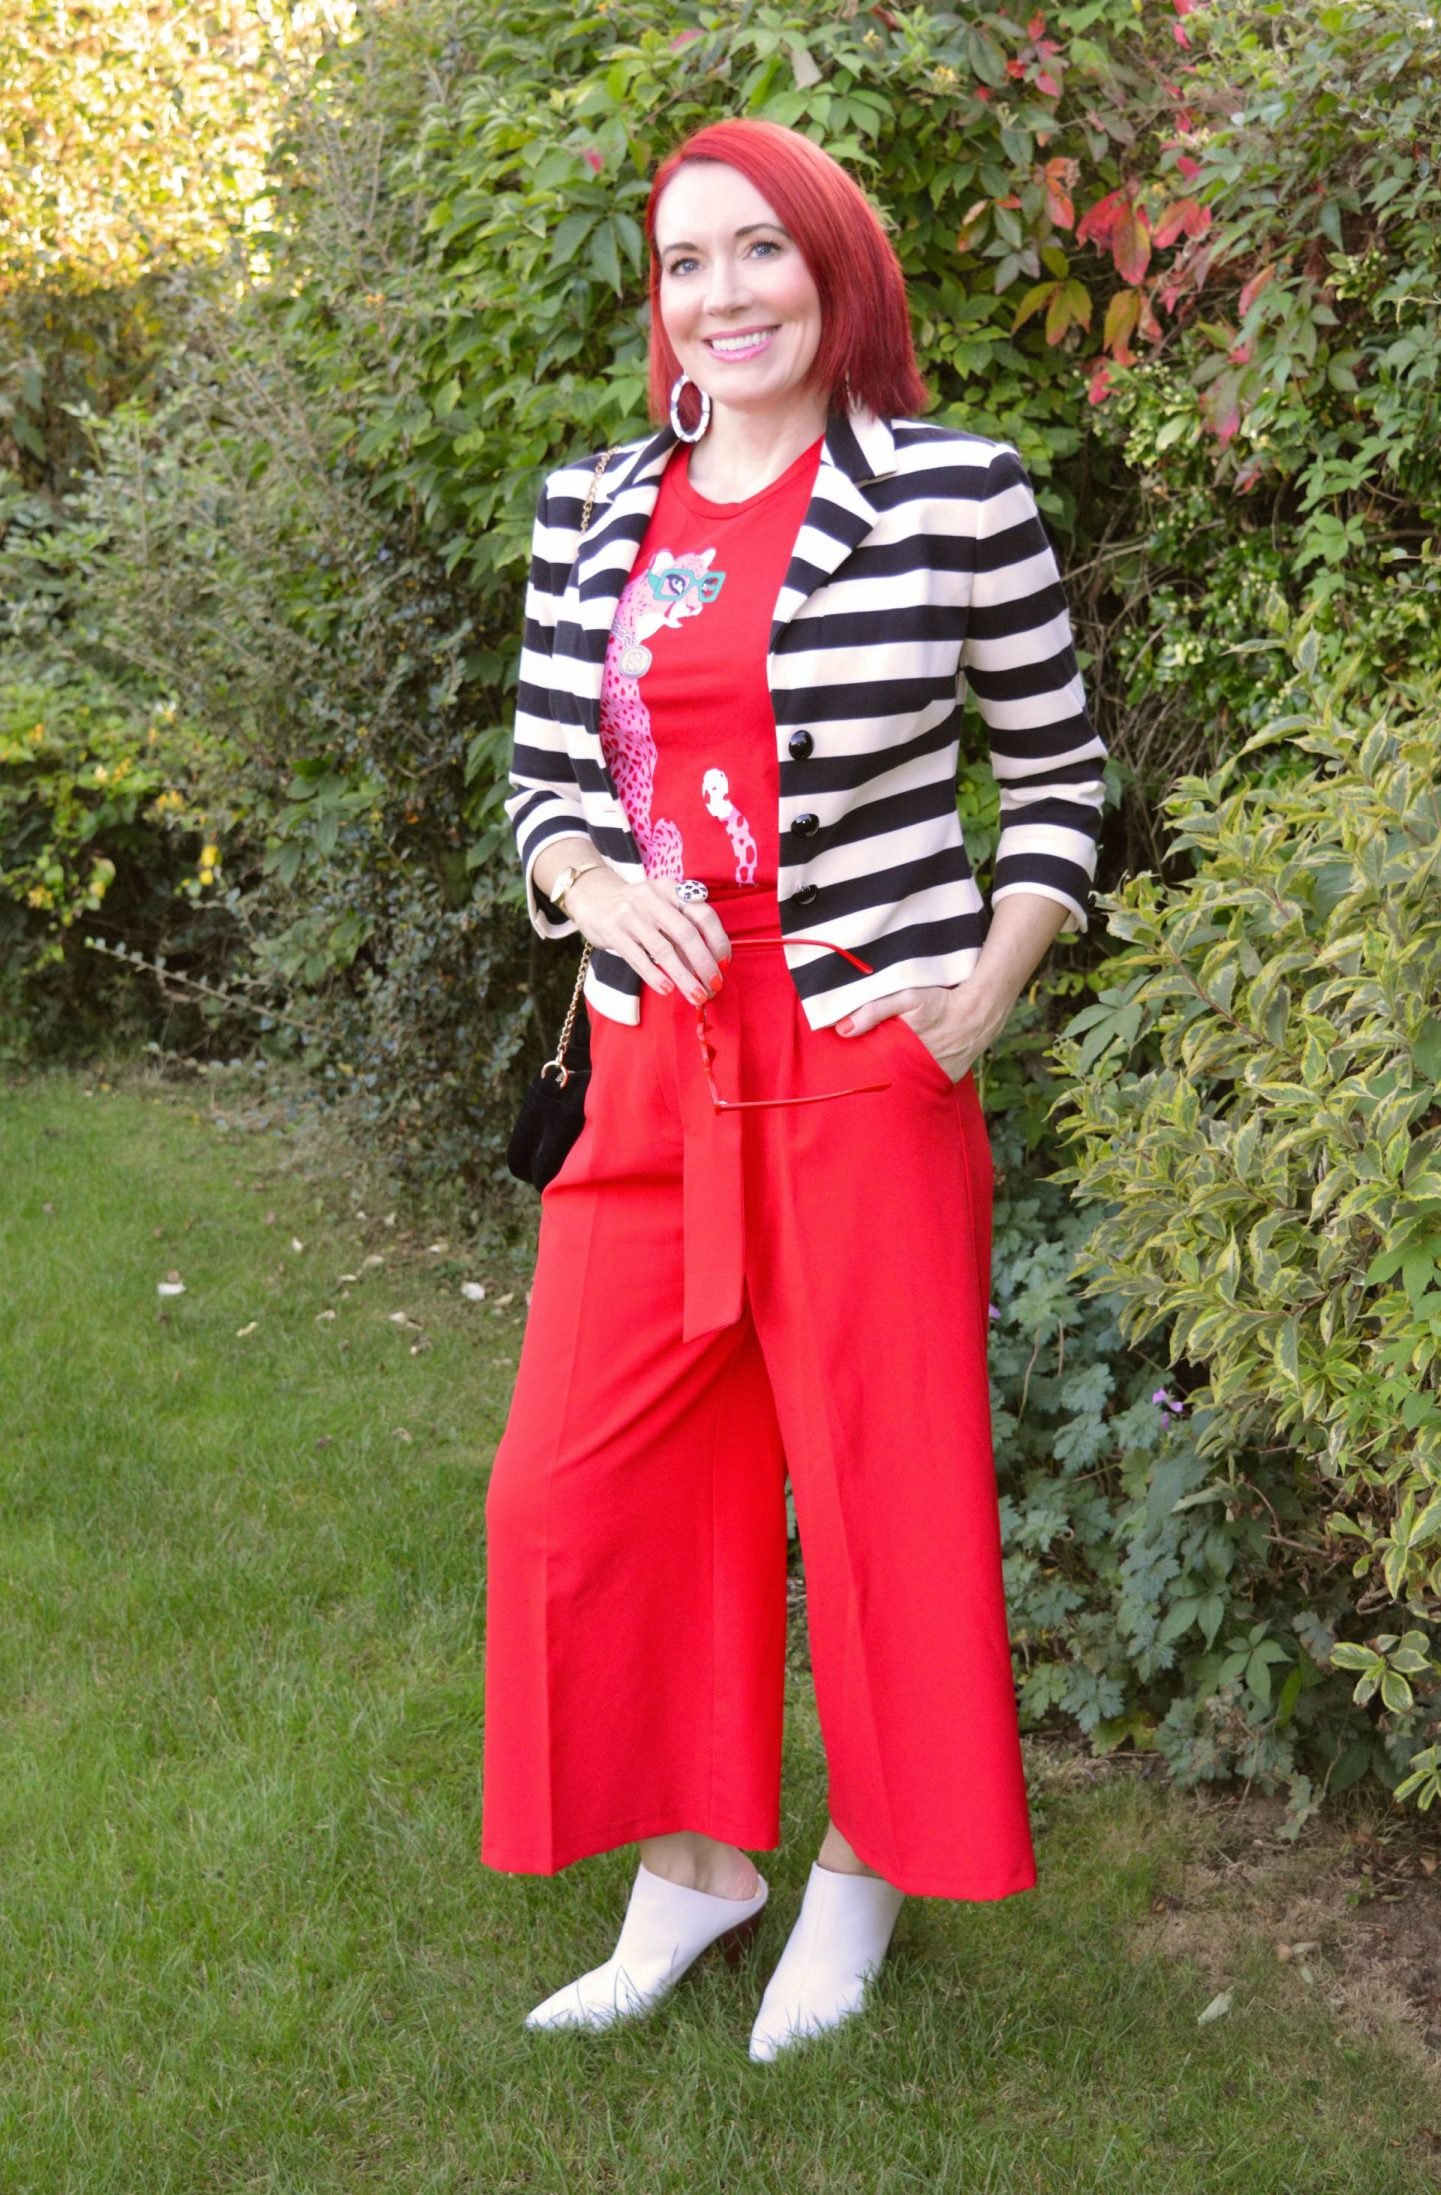 Simply Stripes - September's Thrifty Six, Marks & Spencer black and white striped jacket, Asos red culottes, Soul Sisters red cheetah T-shirt, River Island white shoe boots